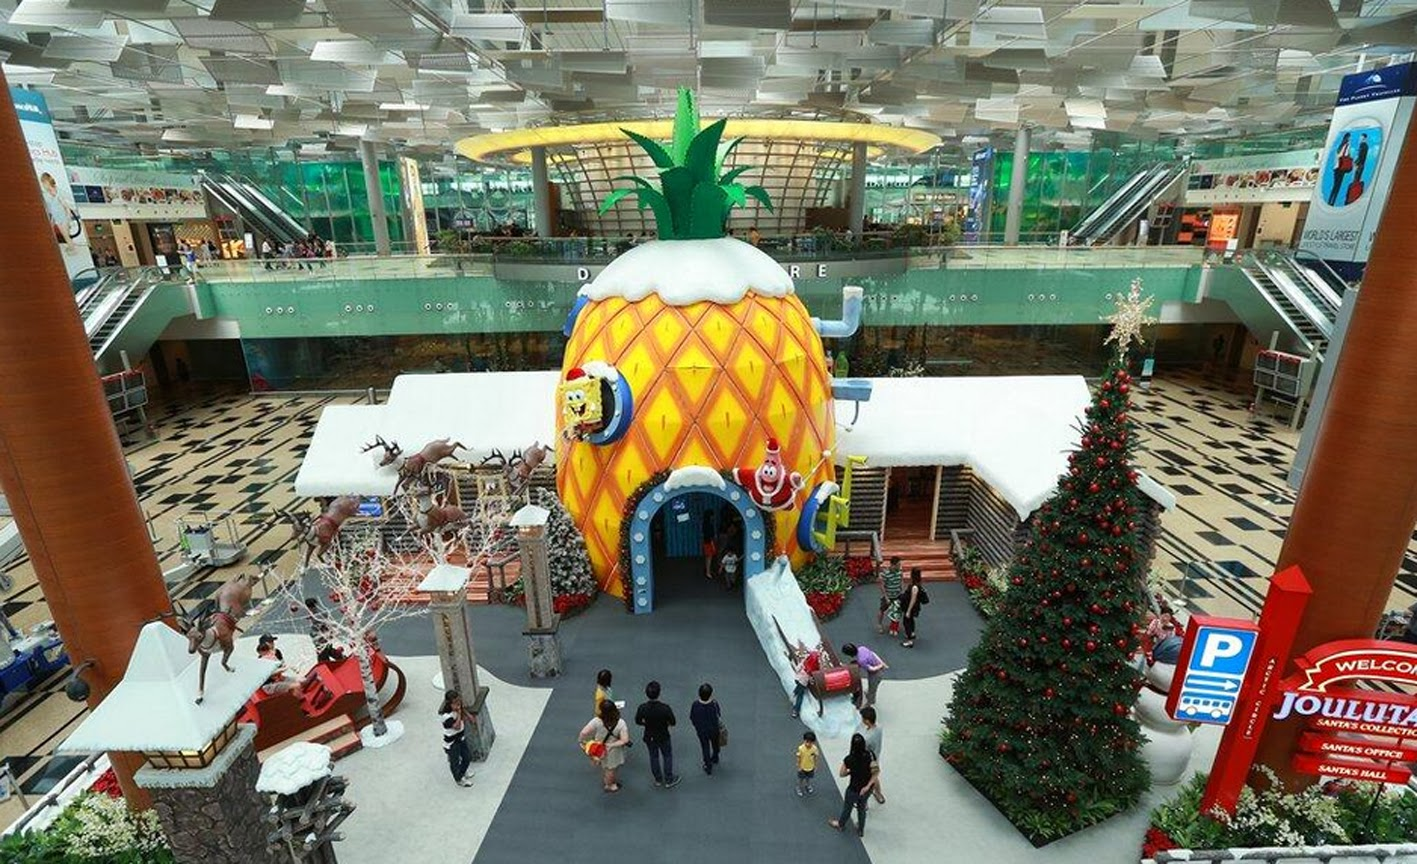 Spongebob And Friends Have Invaded Changi Airport This